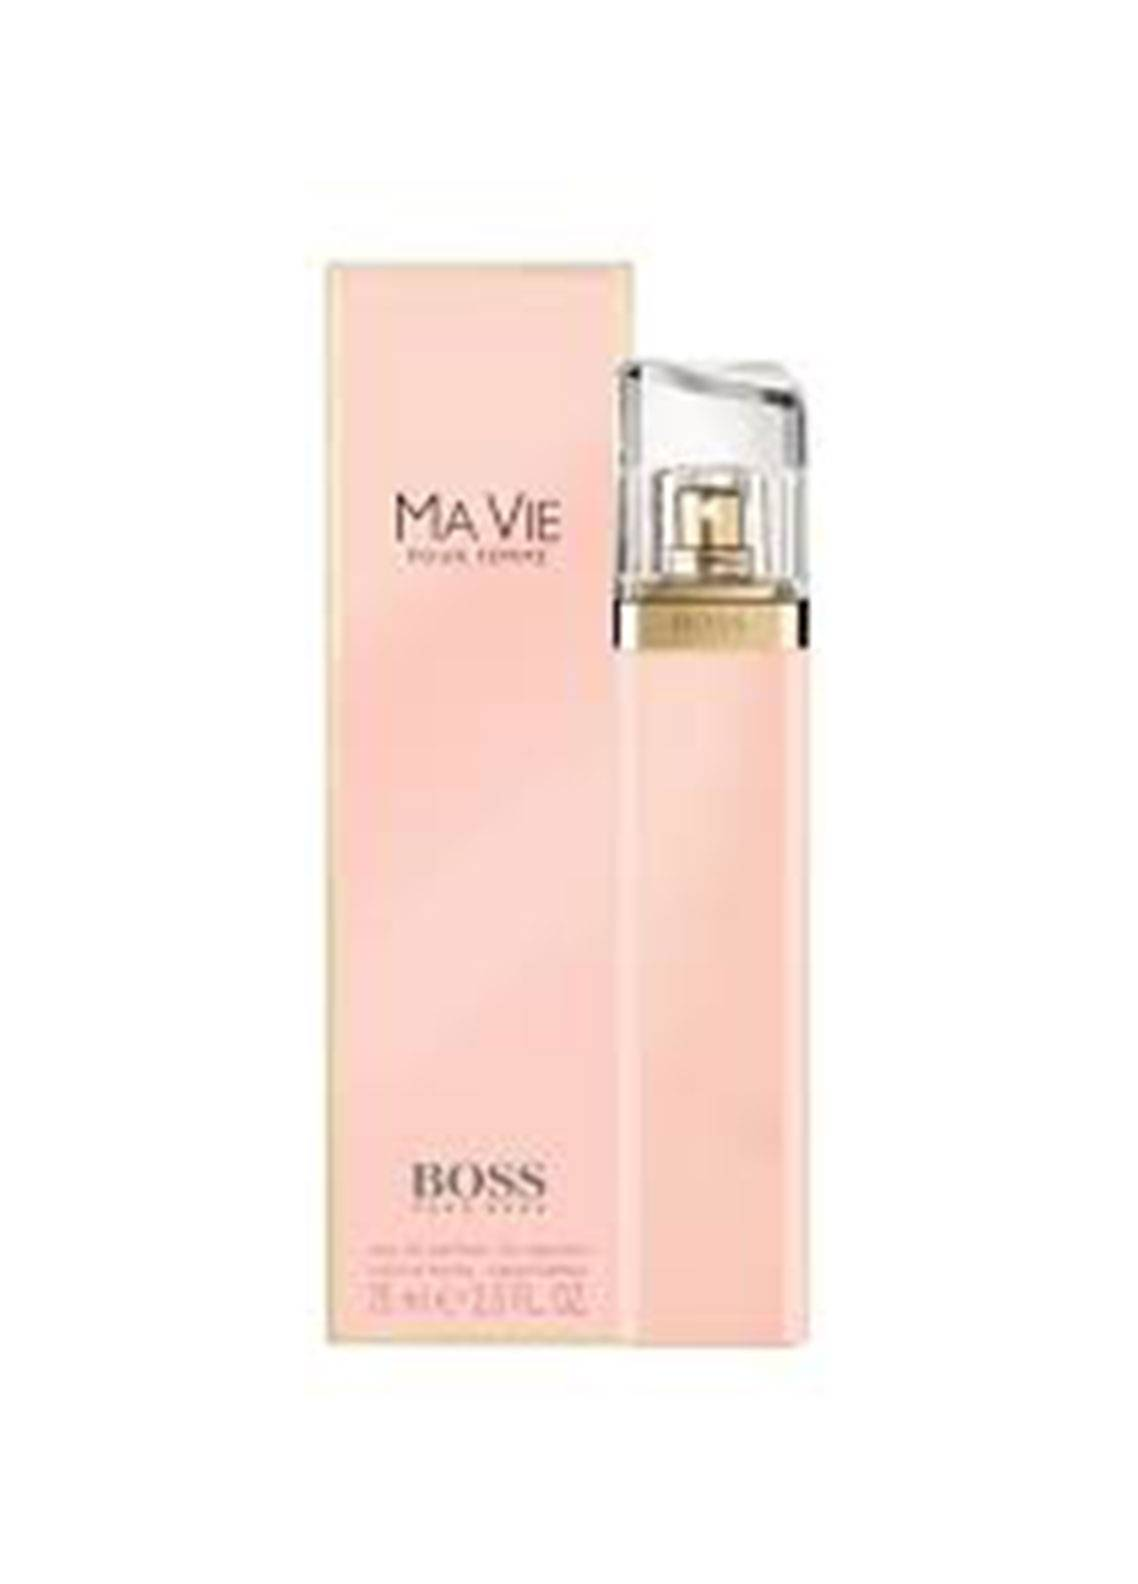 Hugo Boss Mavie Pour Femme women's perfume EDP